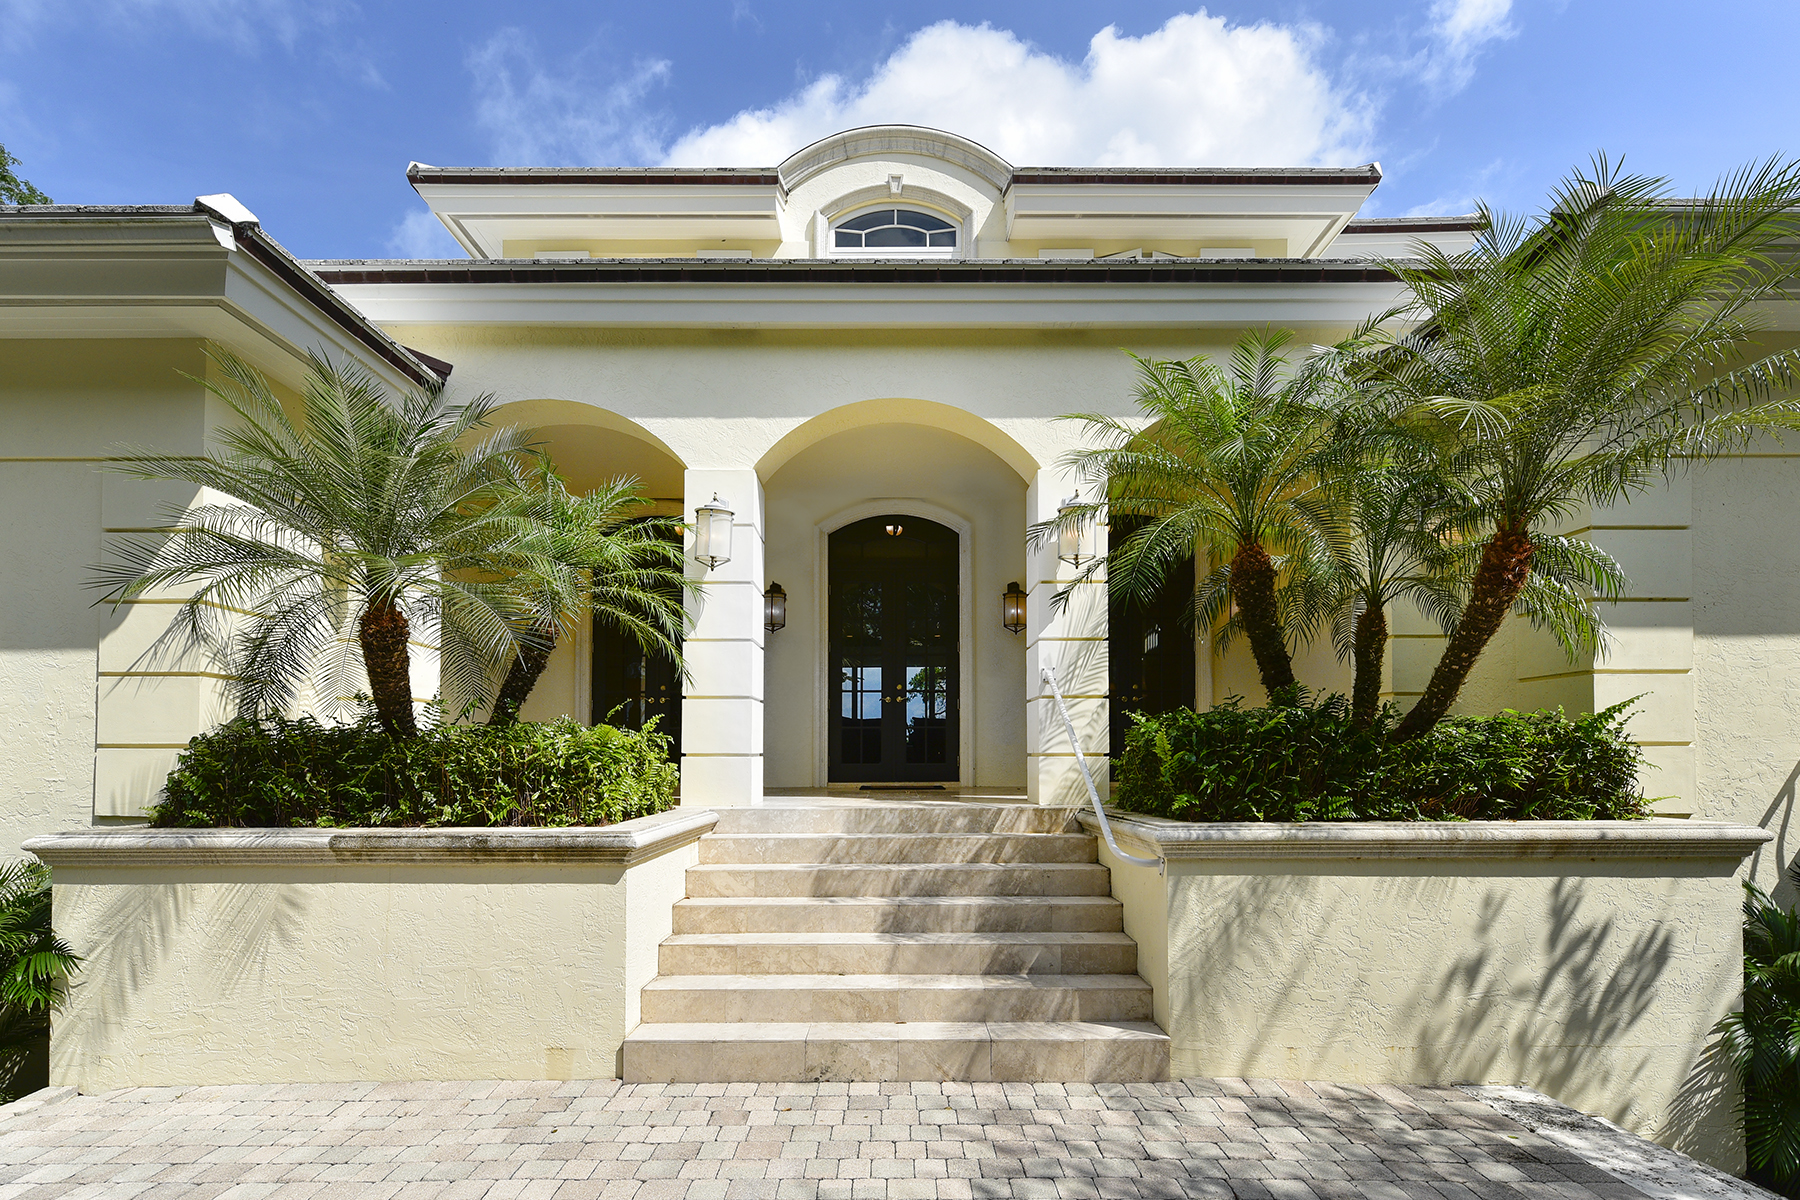 Casa Unifamiliar por un Venta en Custom Built Waterfront Home at Ocean Reef 16 North Bridge Lane Ocean Reef Community, Key Largo, Florida, 33037 Estados Unidos